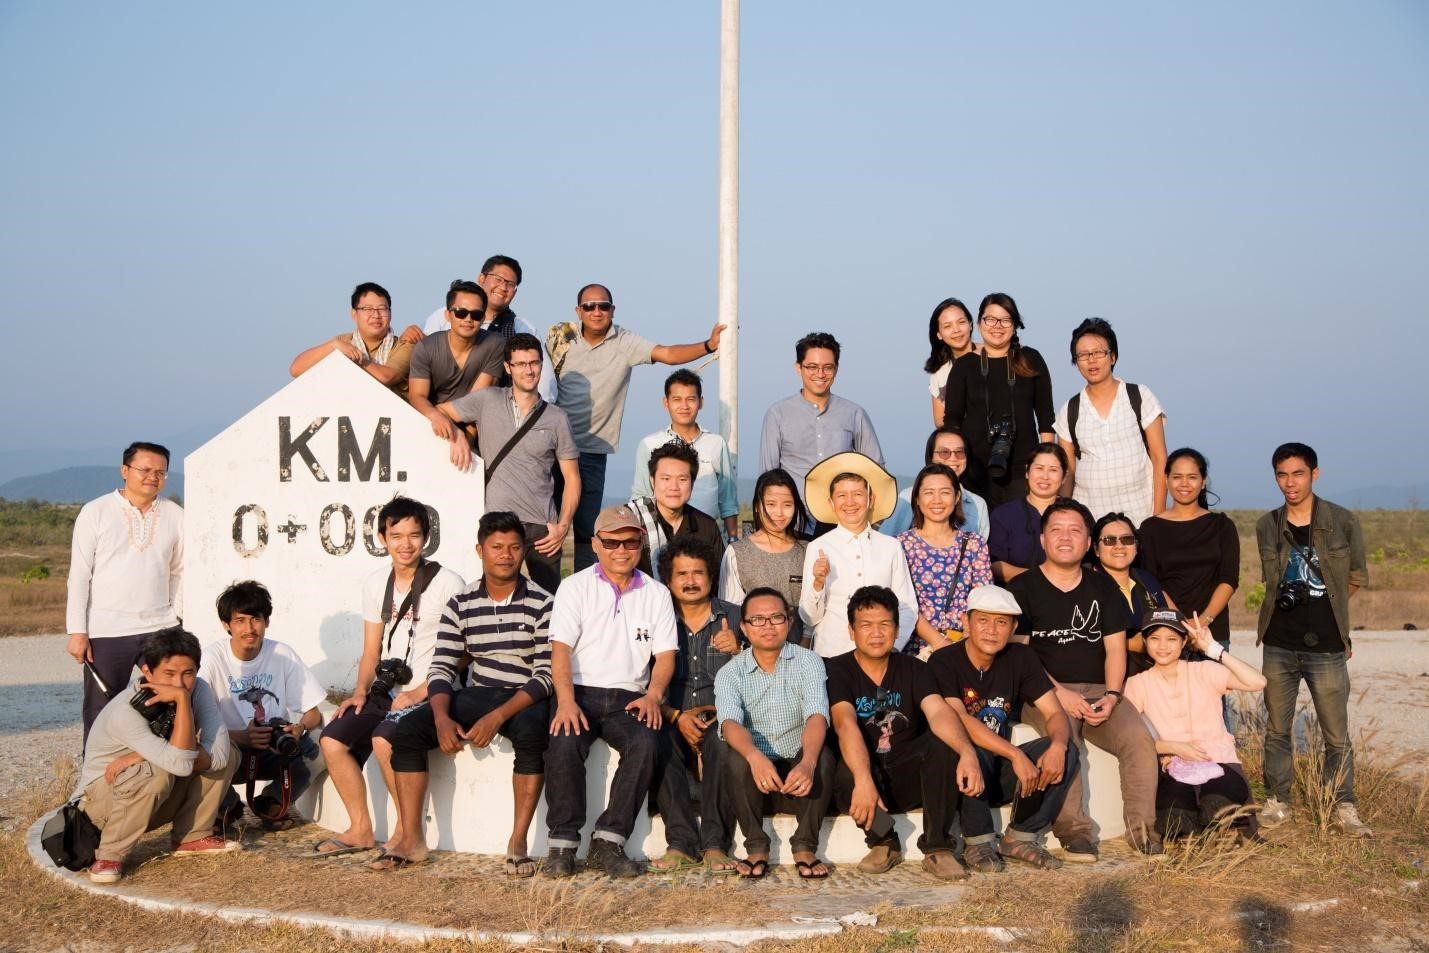 At 0 km, this is where Dawei SEZ starts. Behind the group is the location of ITD's company and its concession. Members of the NHRC, CSOs and media traveled together to the Dawei. SEZ